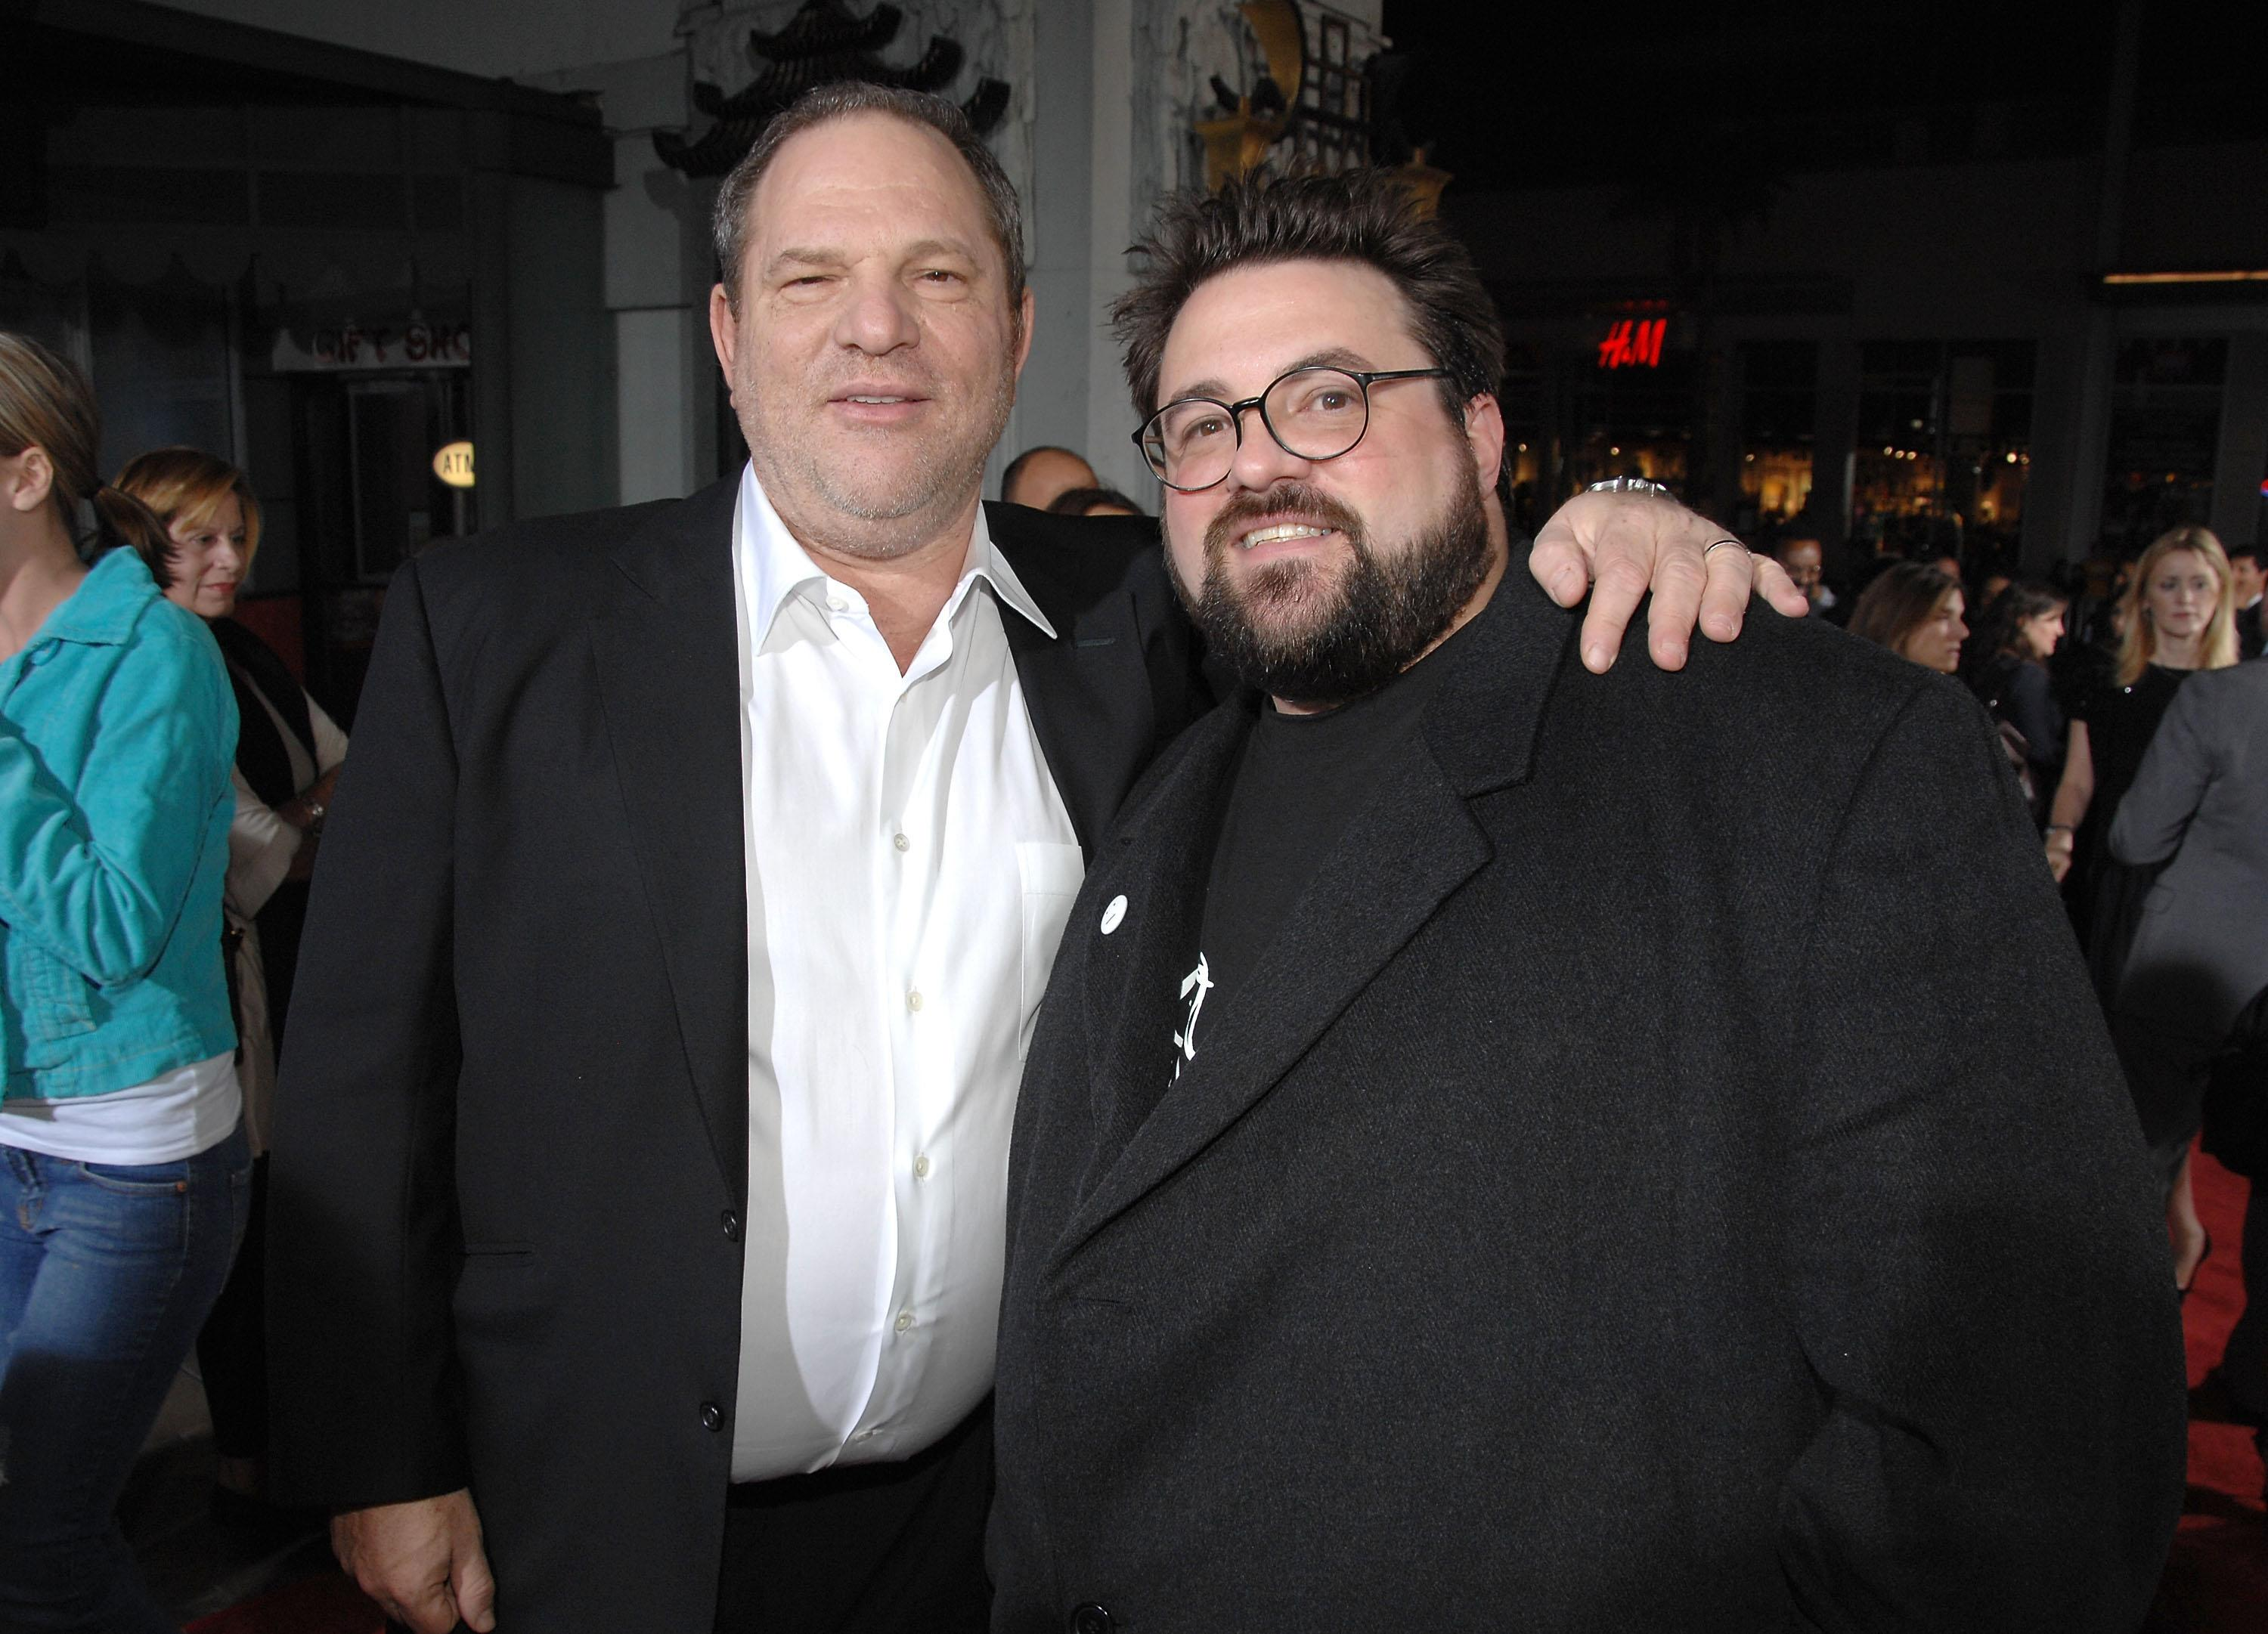 "HOLLYWOOD - OCTOBER 20: Producer Harvey Weinstein and writer/director Kevin Smith arrive to the Weinstein Co. premiere of ""Zack & Miri Make A Porno"" at Grauman's Chinese Theatre on October 20, 2008 in Hollywood, California. (Photo by John Shearer/WireImage)"